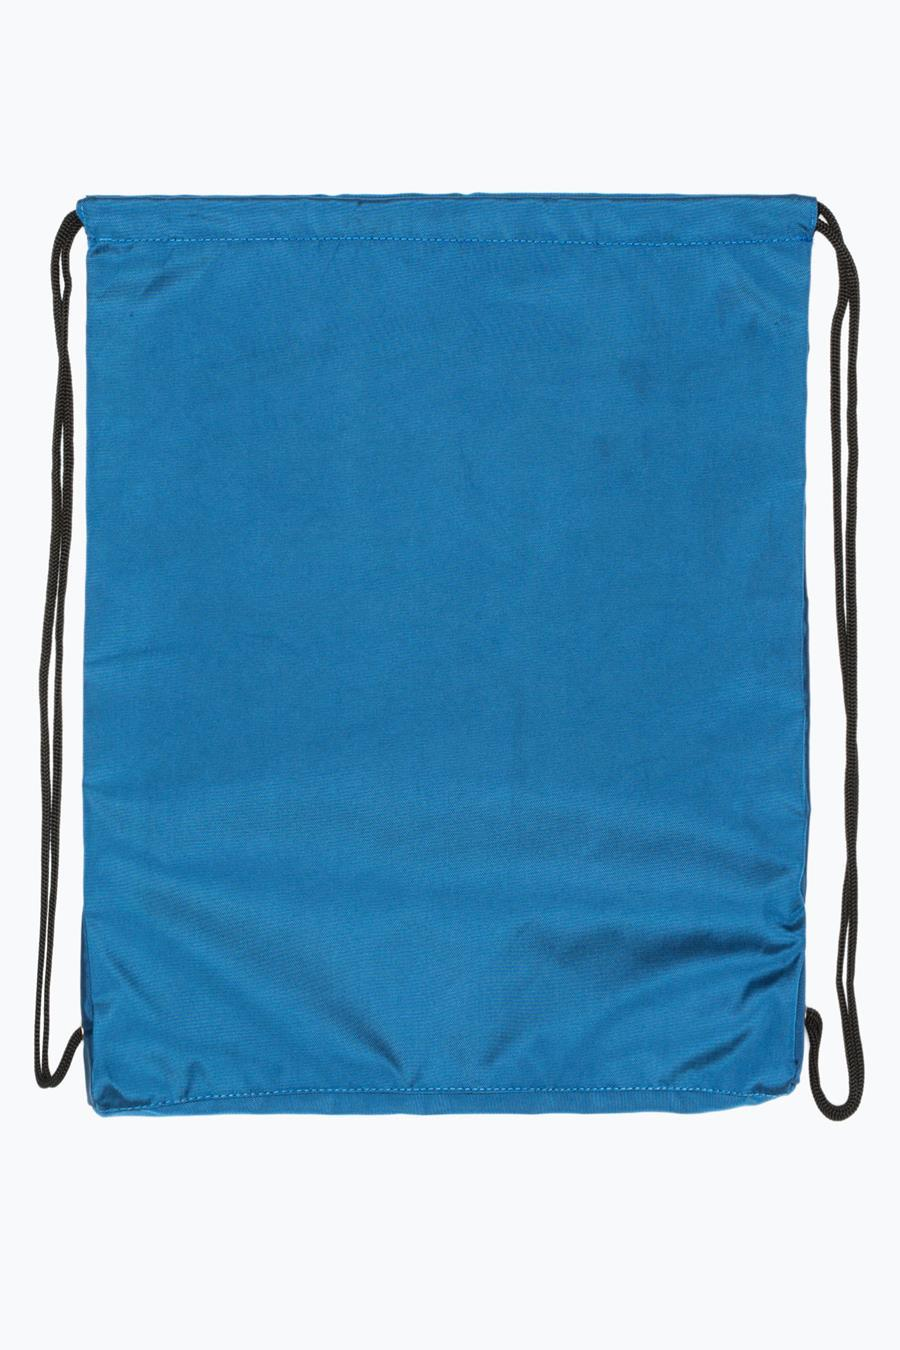 675a31347d HYPE BLUE CORE DRAWSTRING – JustHype ltd